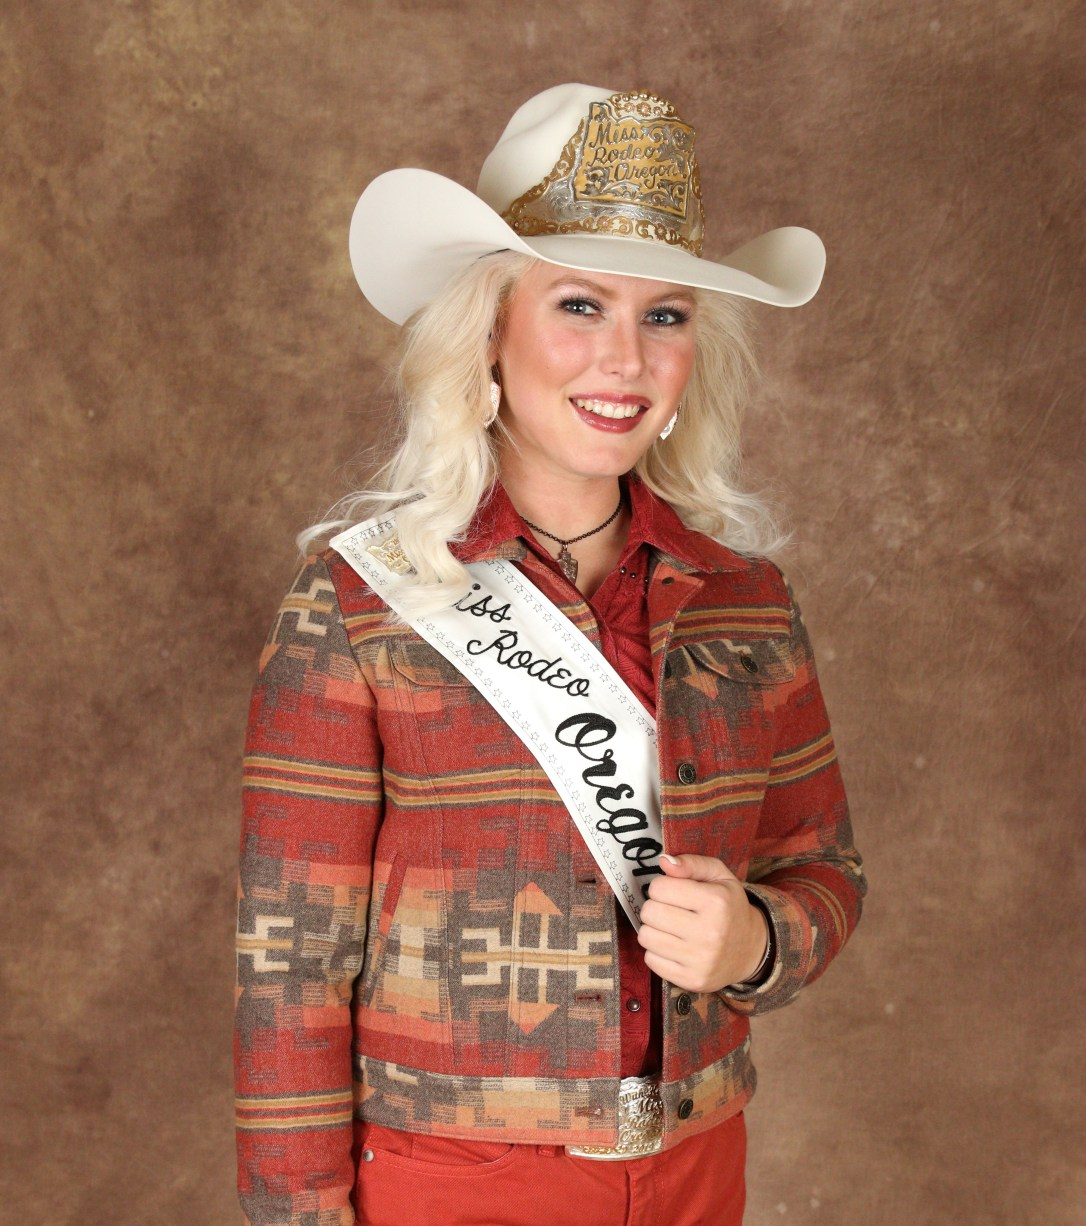 Miss Oregon Rodeo 2019, Taylor Ann Sramstad, poses for a photo wearing rust-colored jeans and a jeans-style jacket made from Pendleton wool. She is wearing herw Miss Oregon Rodeo 2019 sash, and a white western hat adorned with her title tiara.